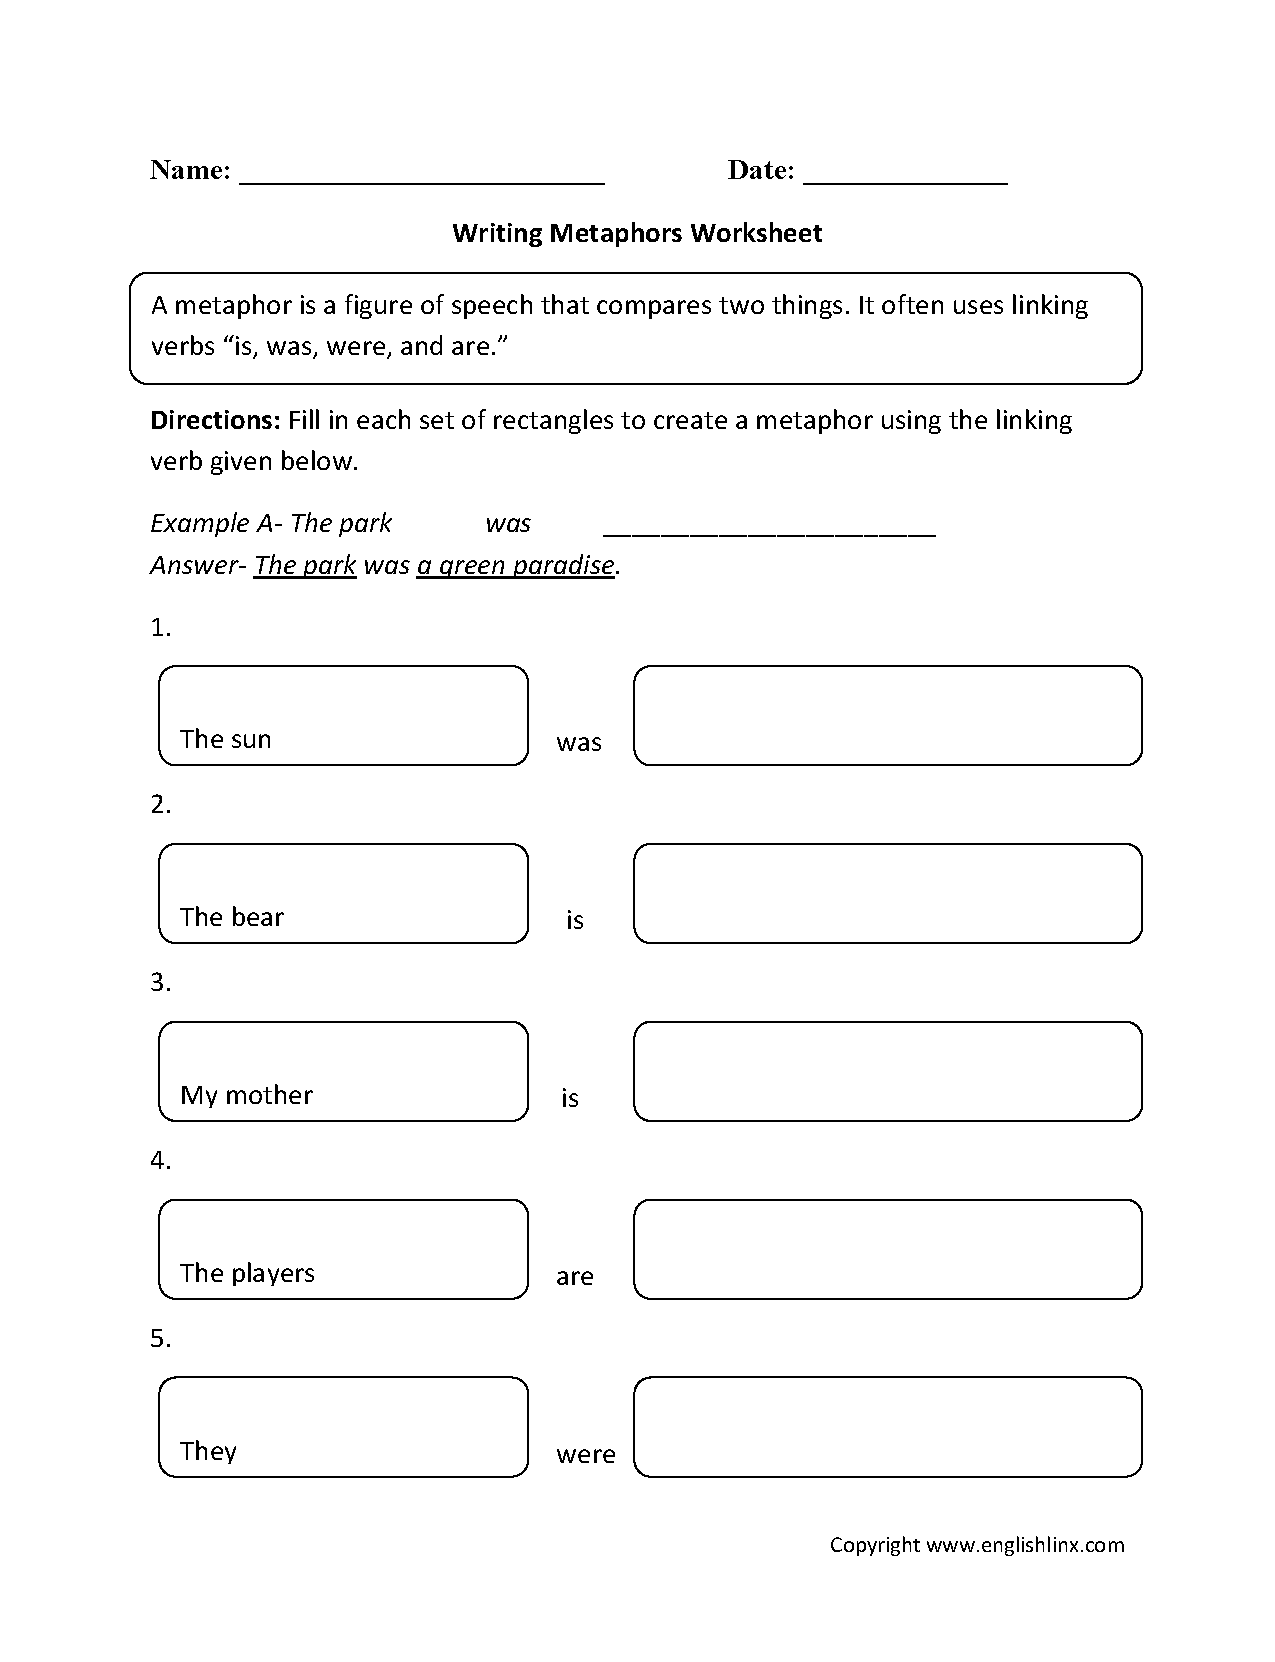 Worksheets Analogy Worksheets 8th Grade english worksheets common core aligned 3rd grade worksheets